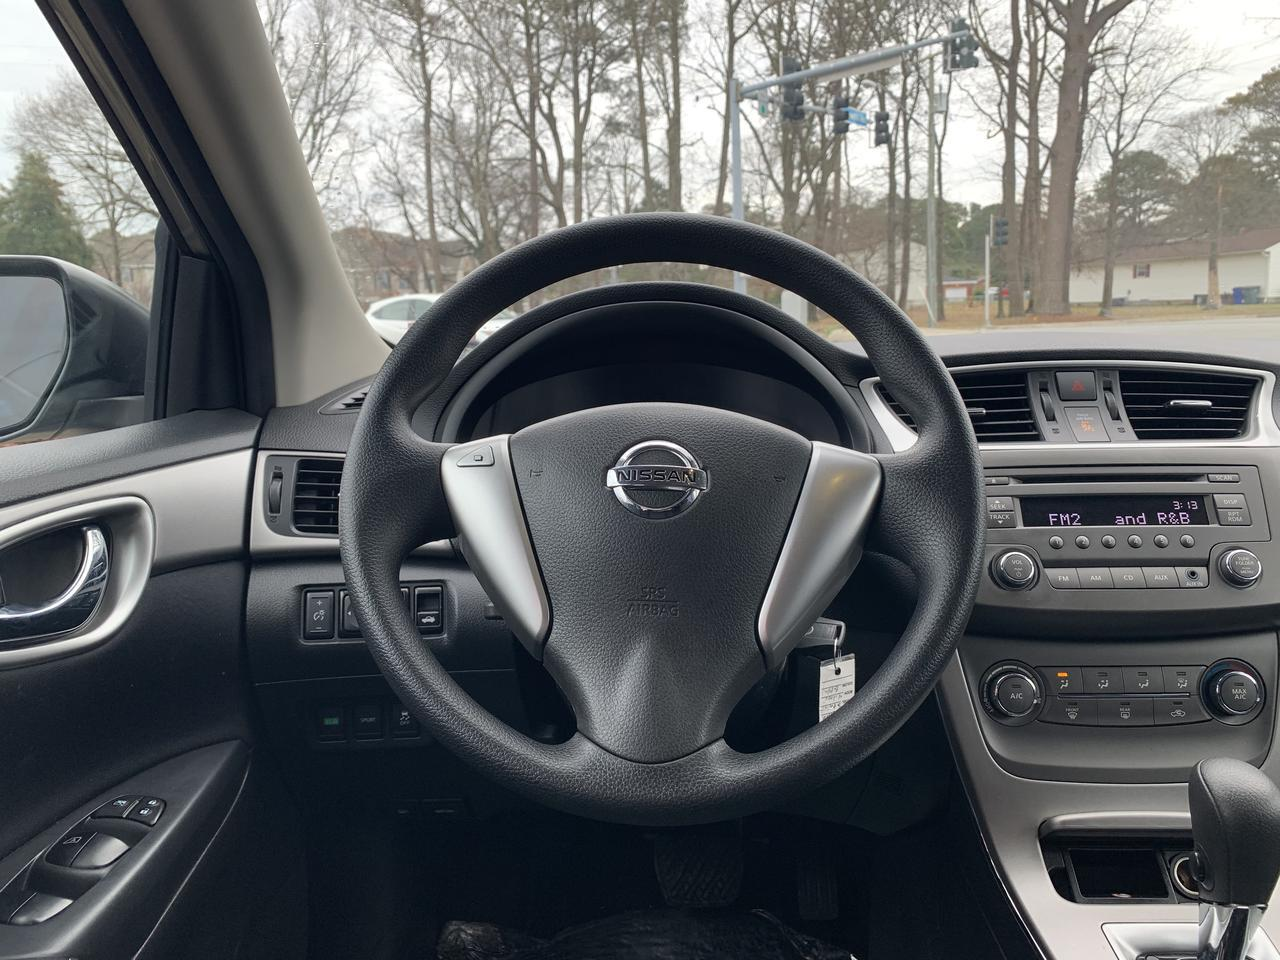 2014 NISSAN SENTRA S, WARRANTY, KEYLESS ENTRY, AUX PORT, SINGLE CD PLAYER, A/C, CRUISE CONTROL, THEFT RECOVERY! Norfolk VA